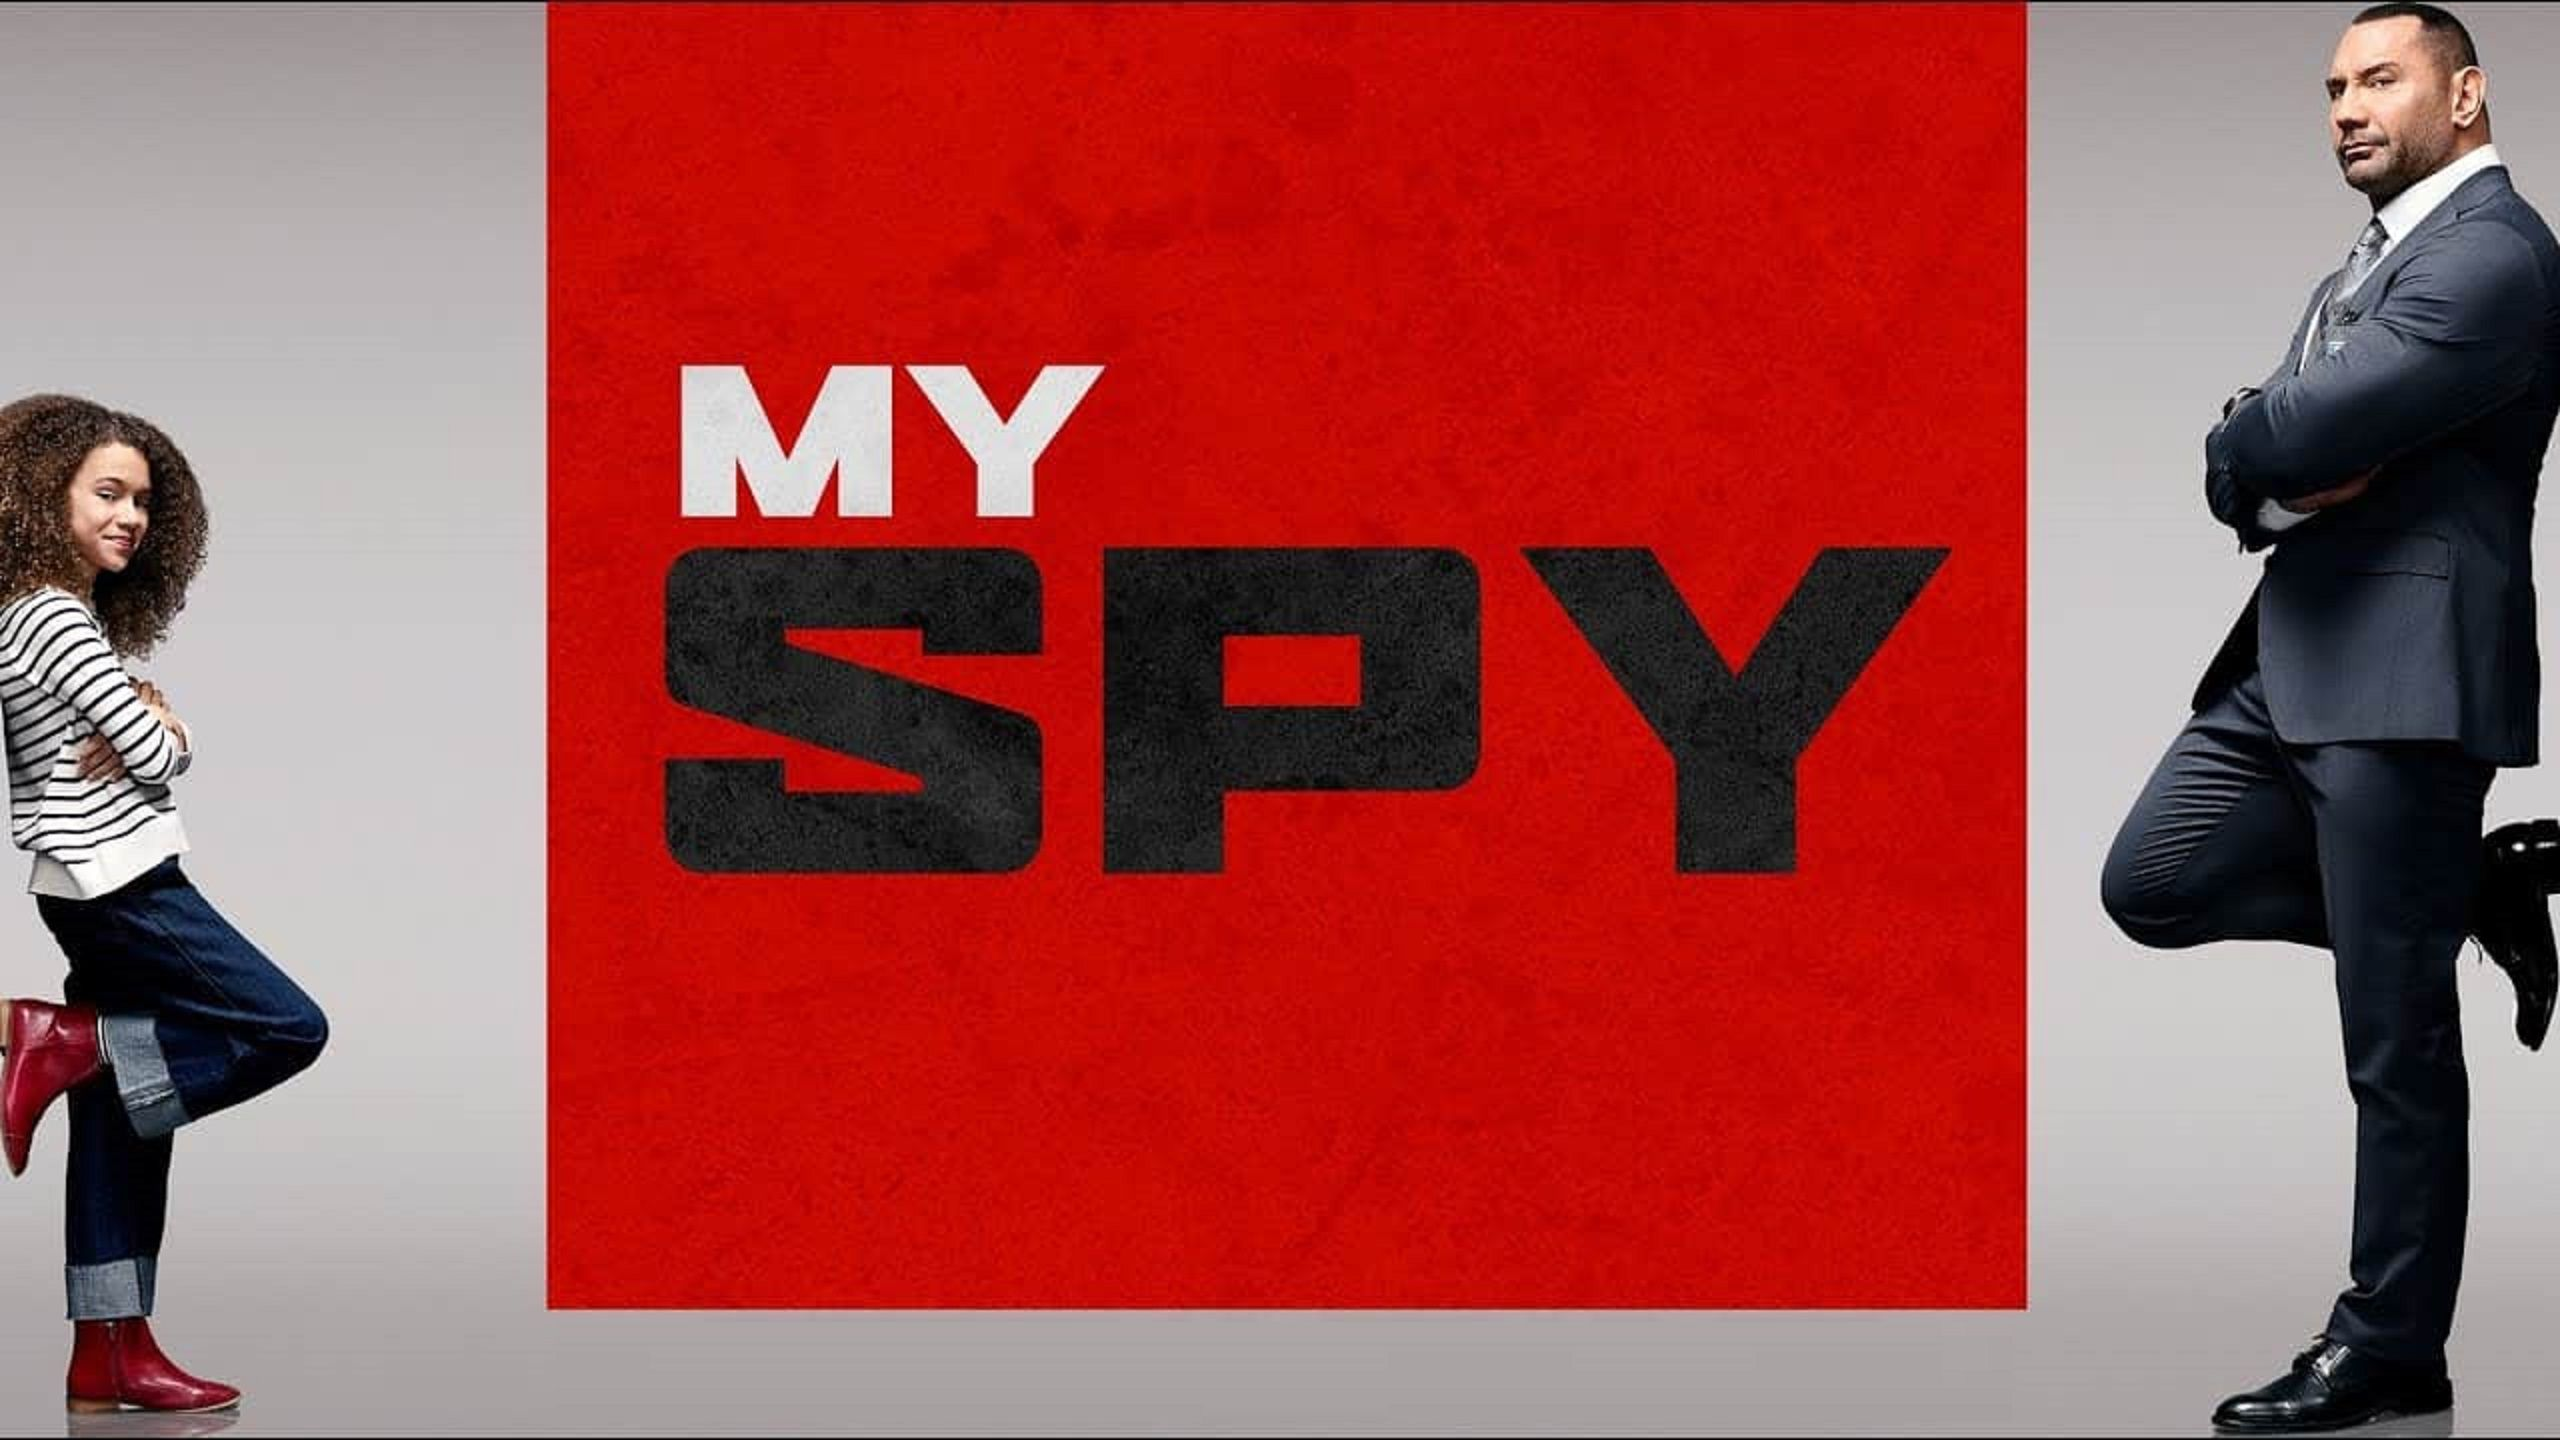 My Spy (2019) funny comedy with Dave Bautista